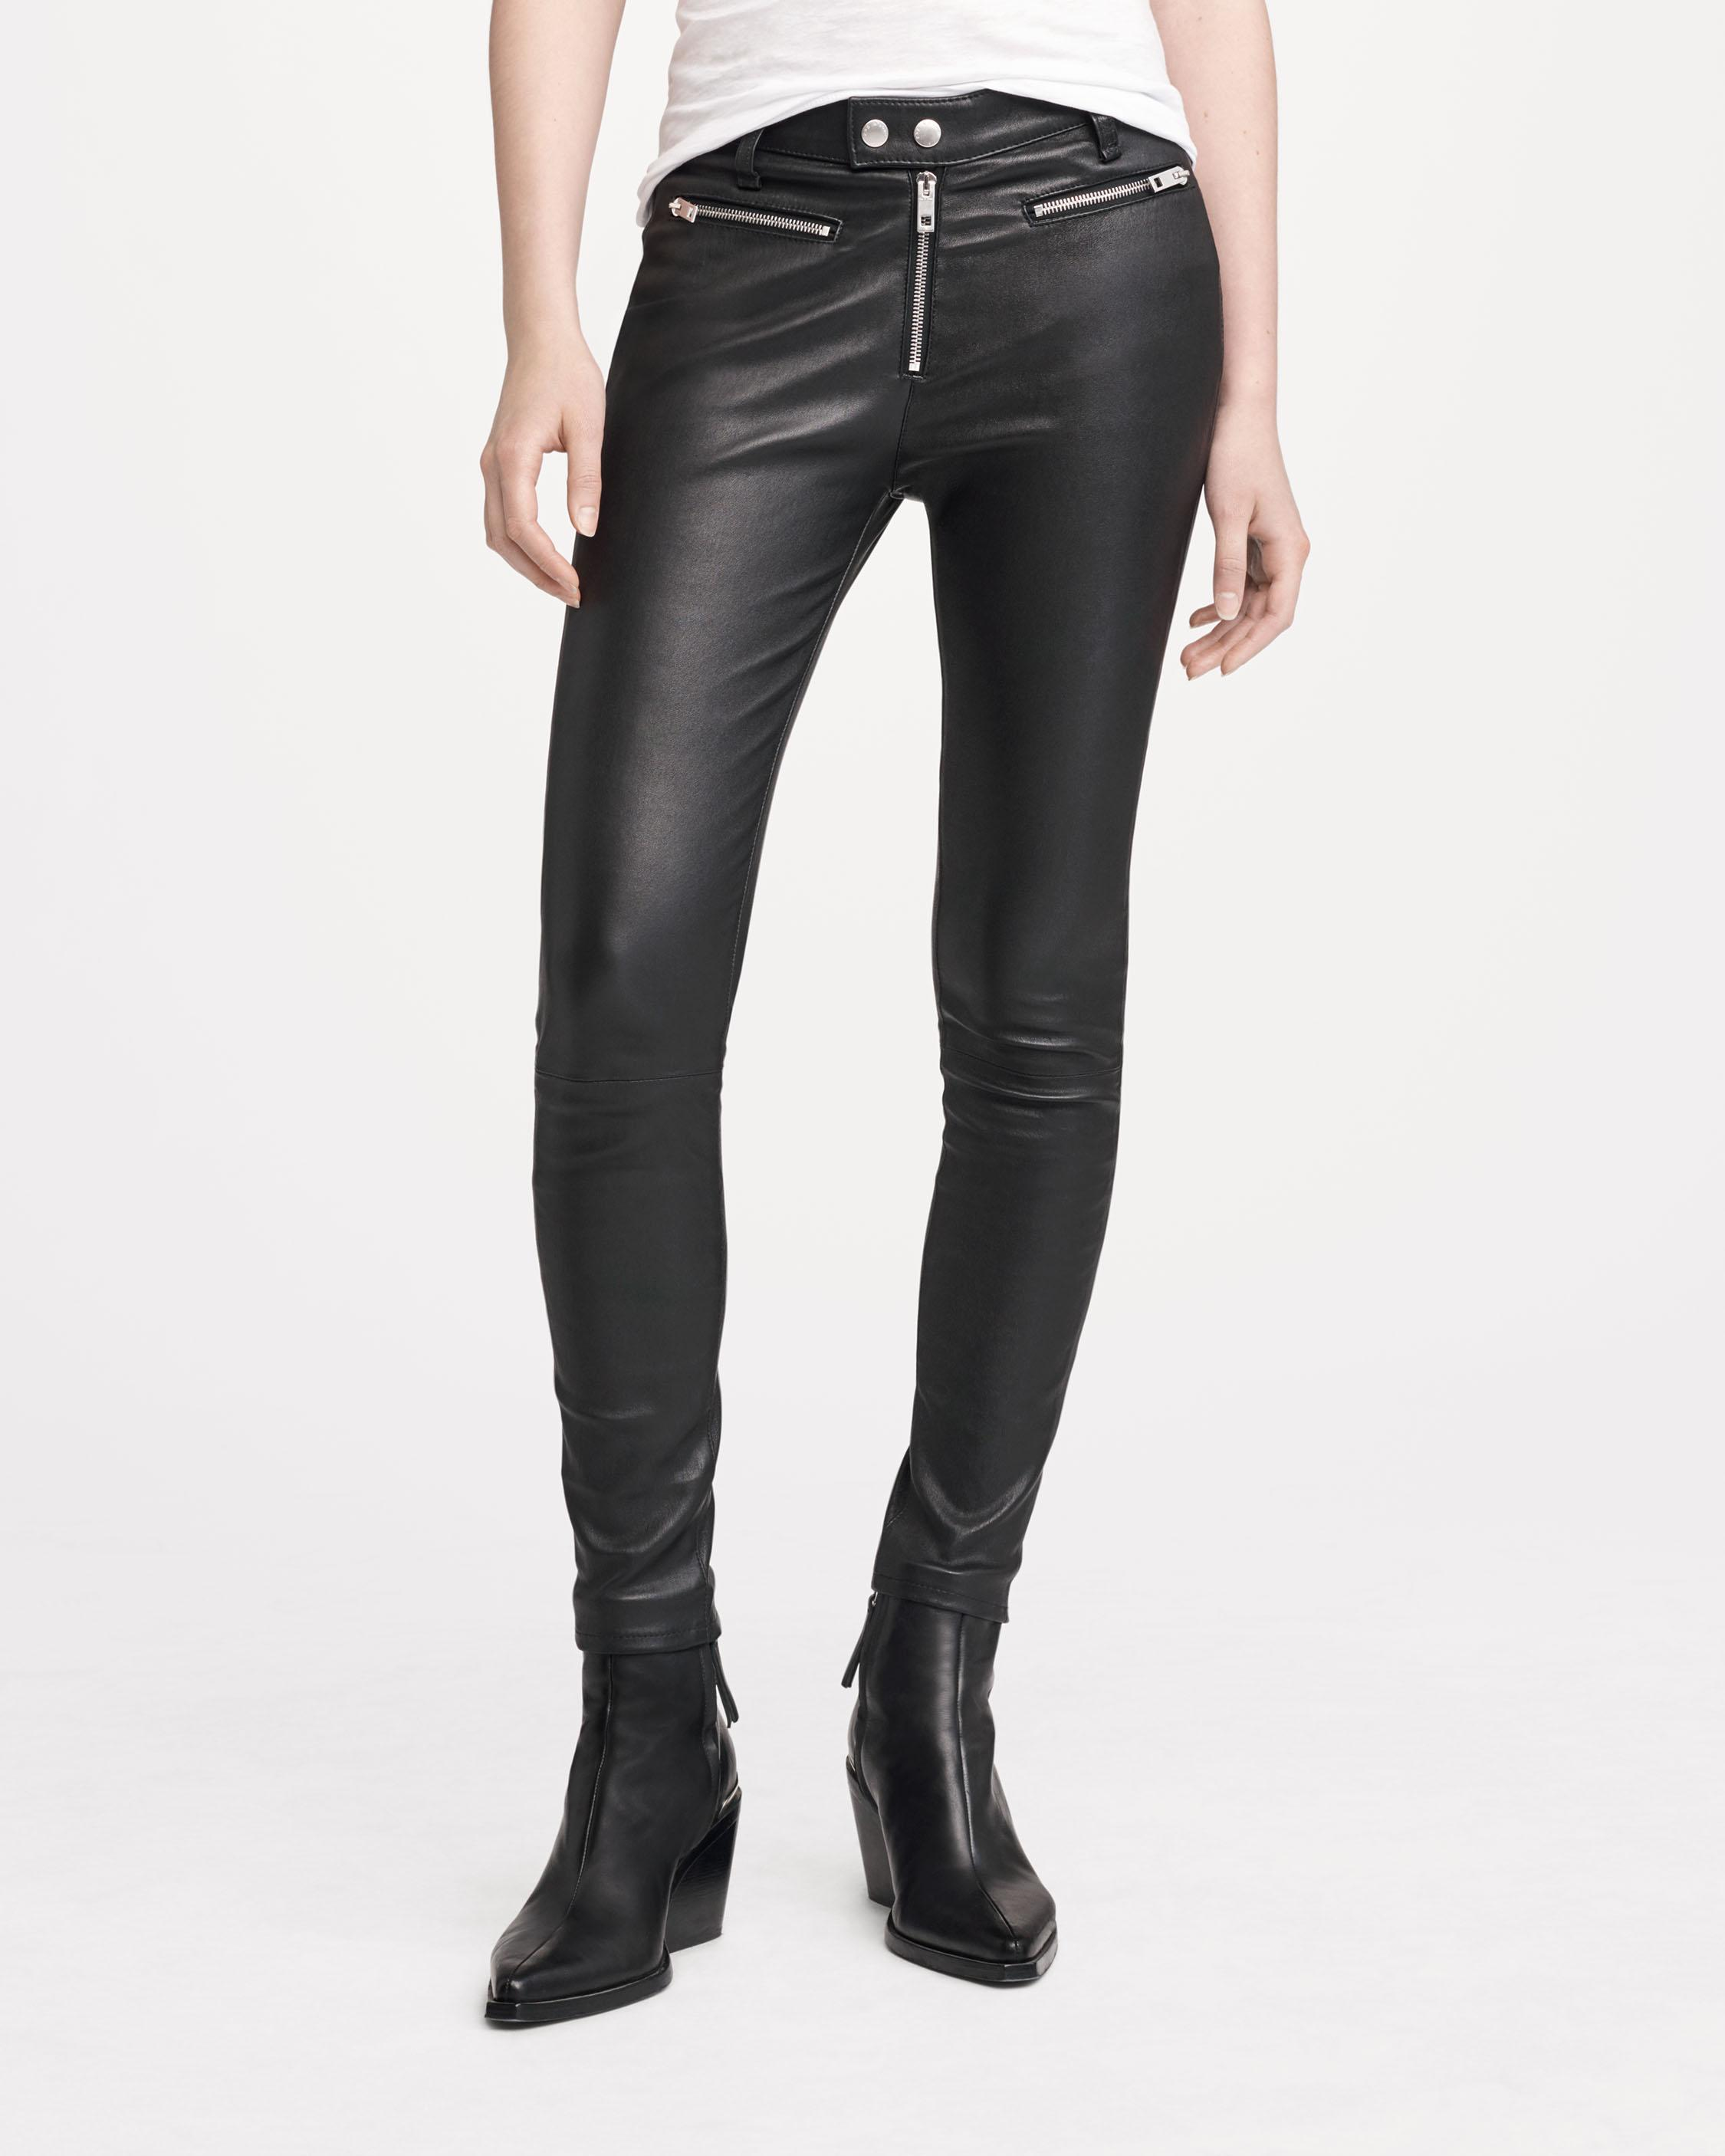 RYDER LEATHER JEAN